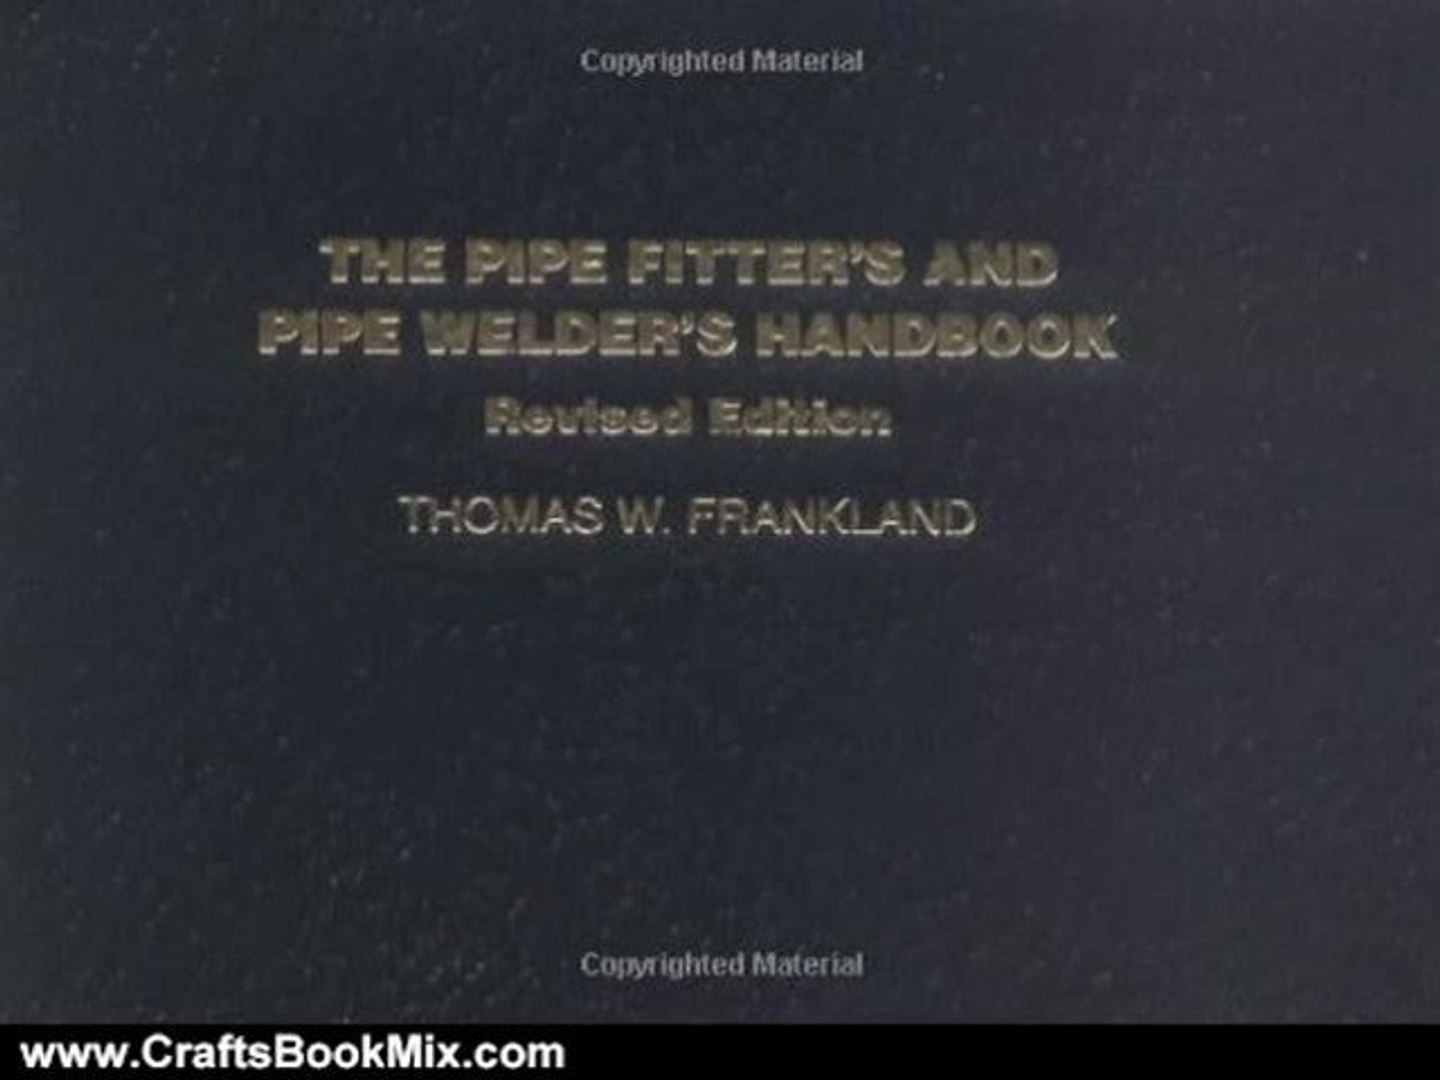 Crafts Book Review: The Pipe Fitter's and Pipe Welder's Handbook, Revised Edition by Thoma